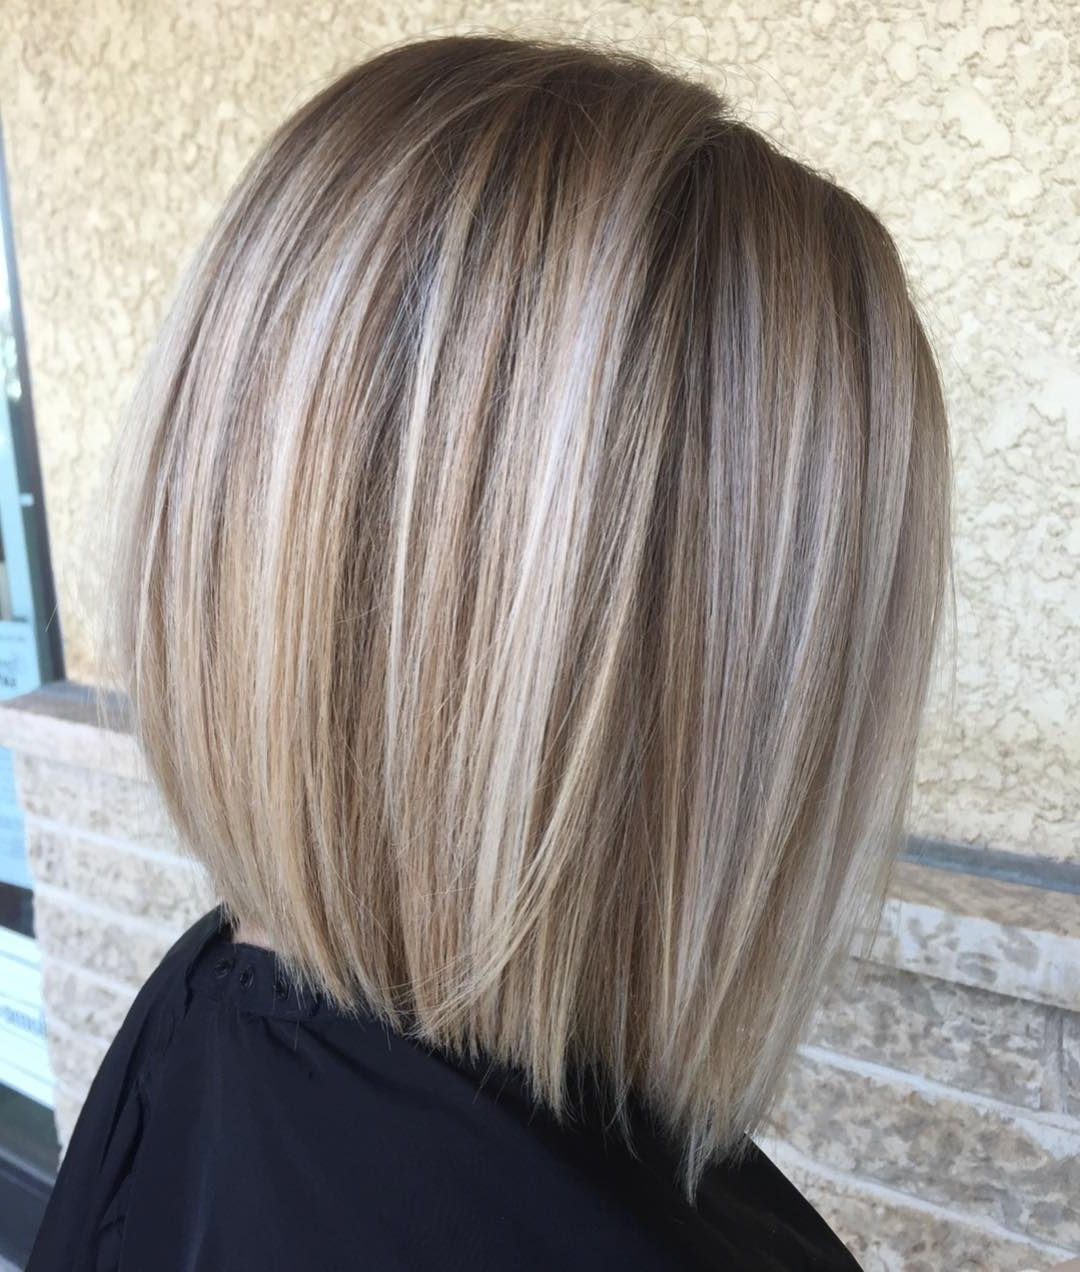 60 Medium Length Haircuts And Hairstyles To Pull Off In 2020 10+ Stylish Medium Hairstyles With Bangs And Highlights